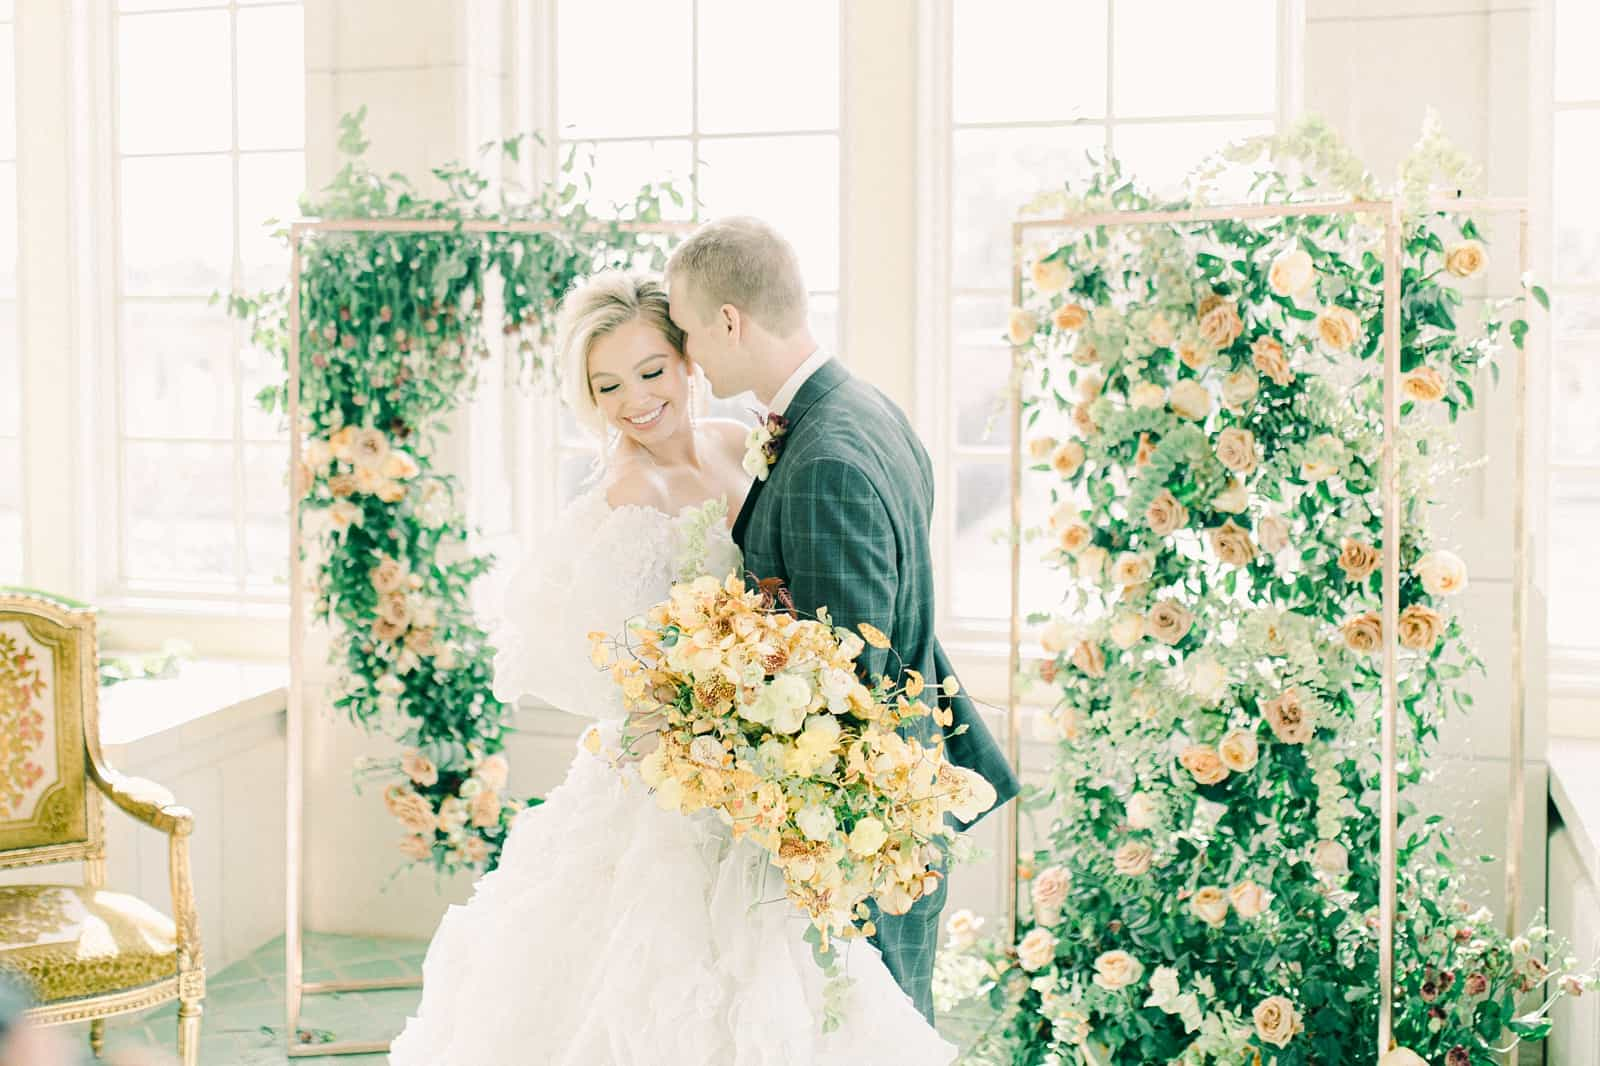 Bride and groom wedding ceremony with elaborate floral backdrop